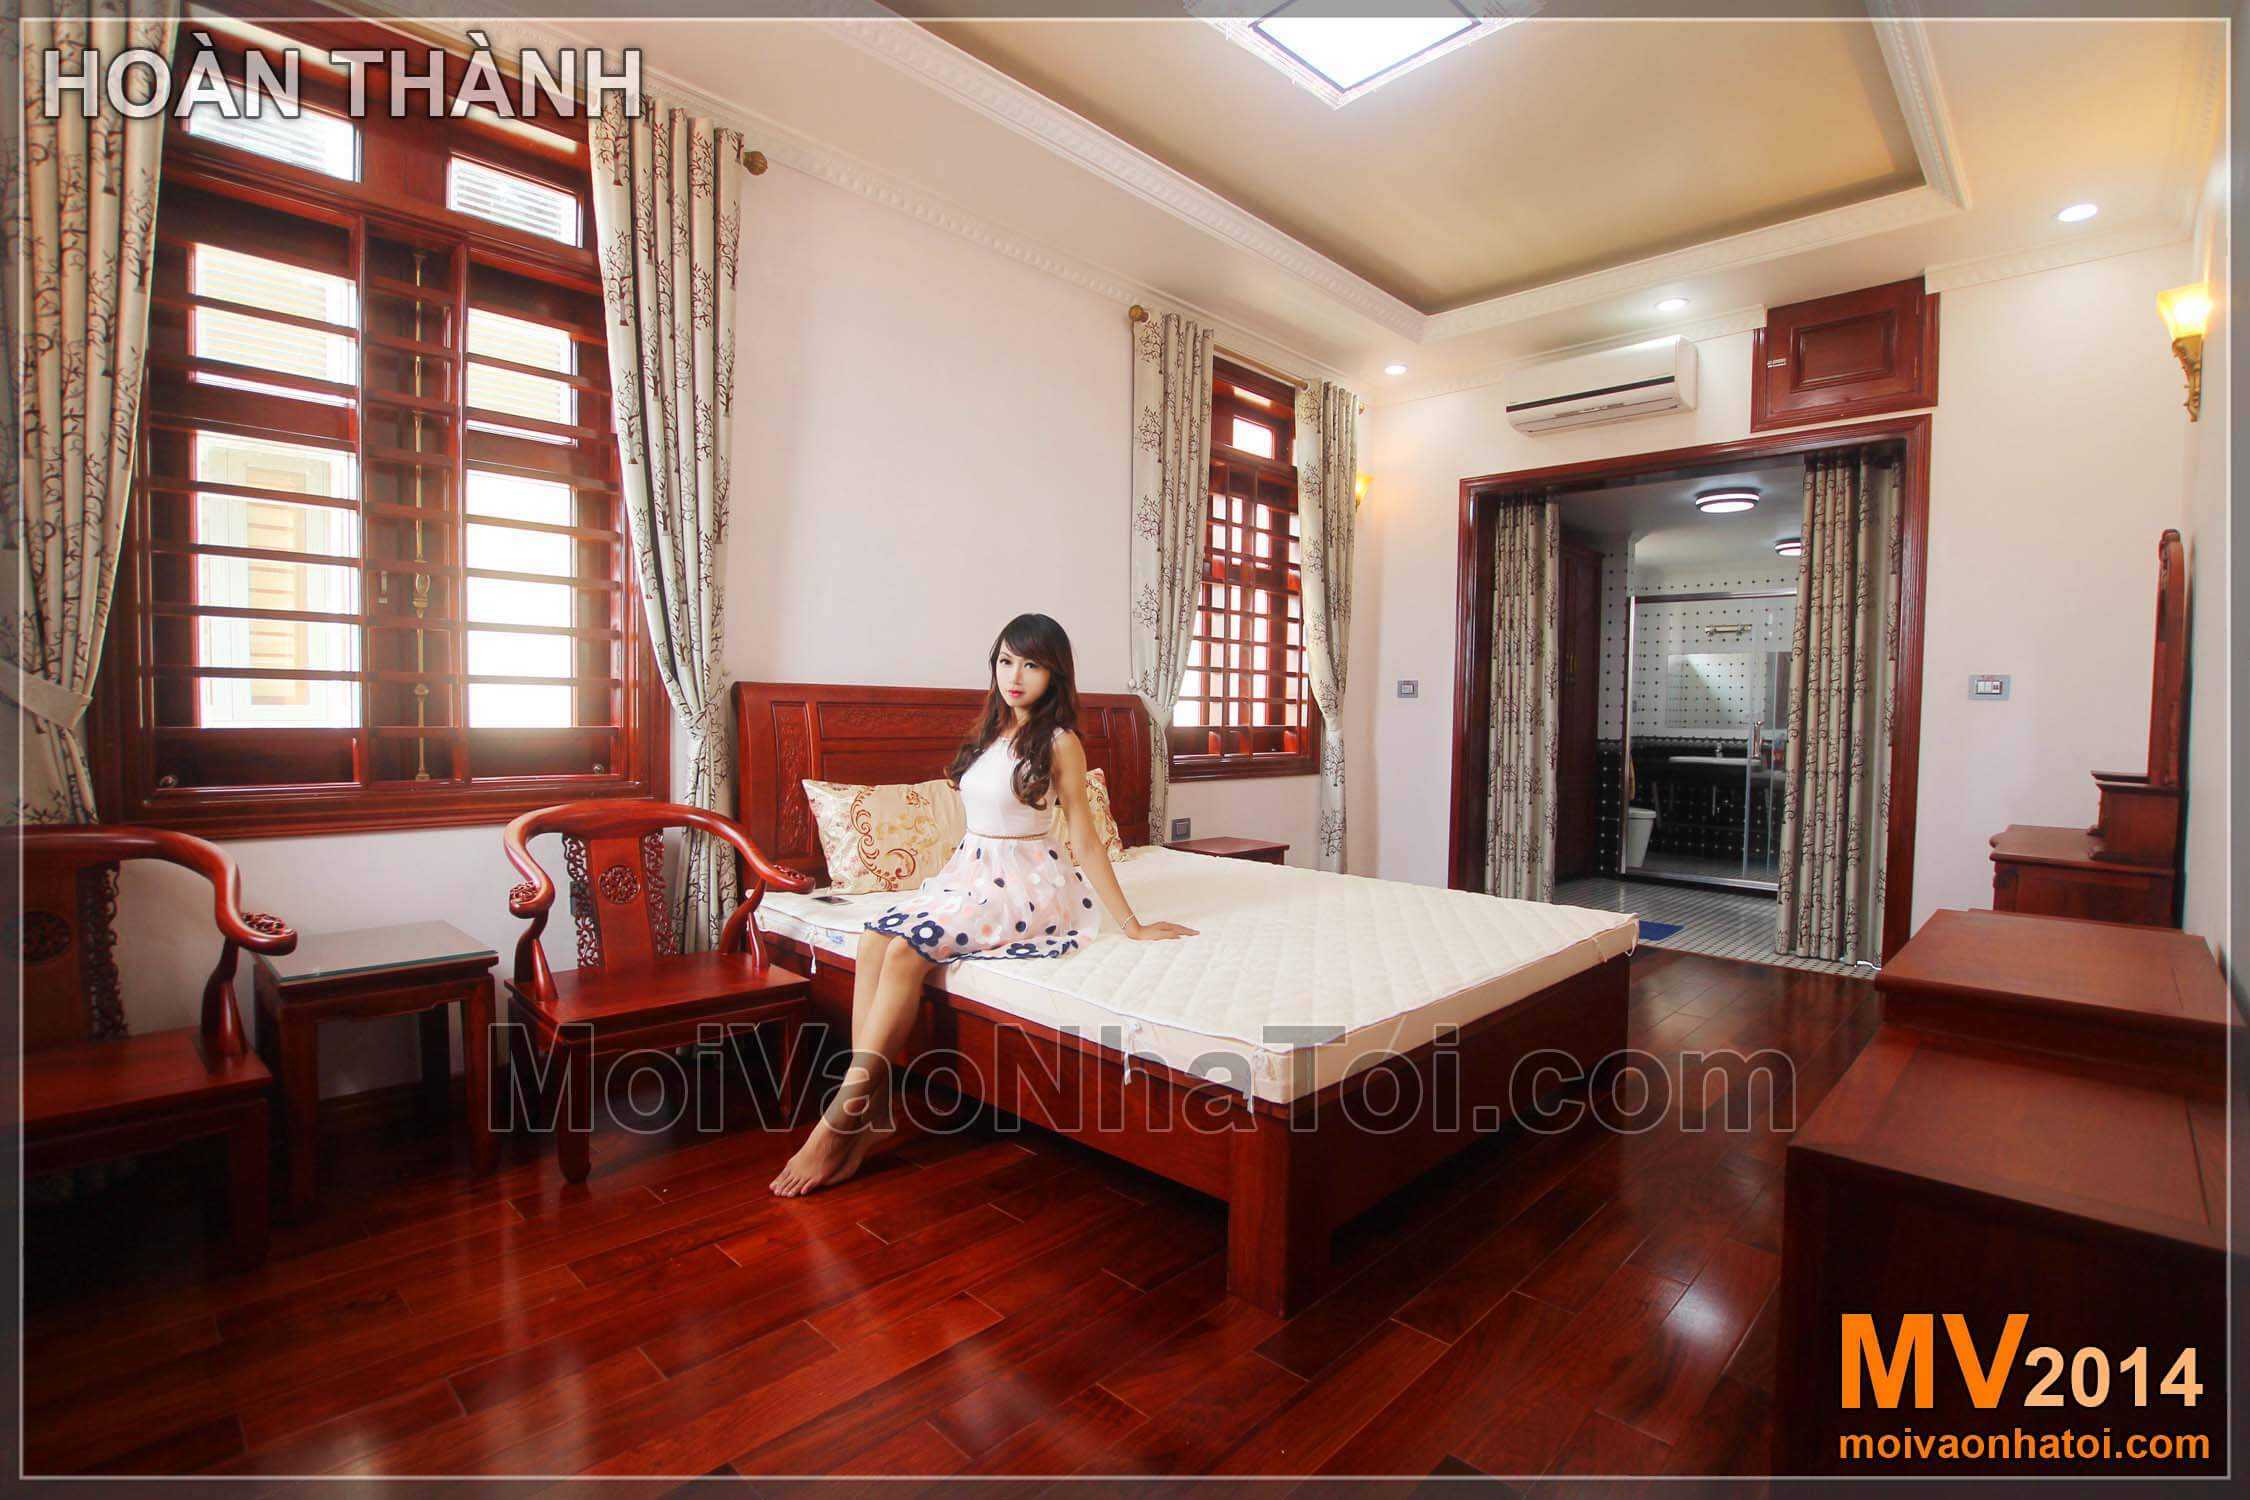 Bedroom furniture has completed the classic villa design